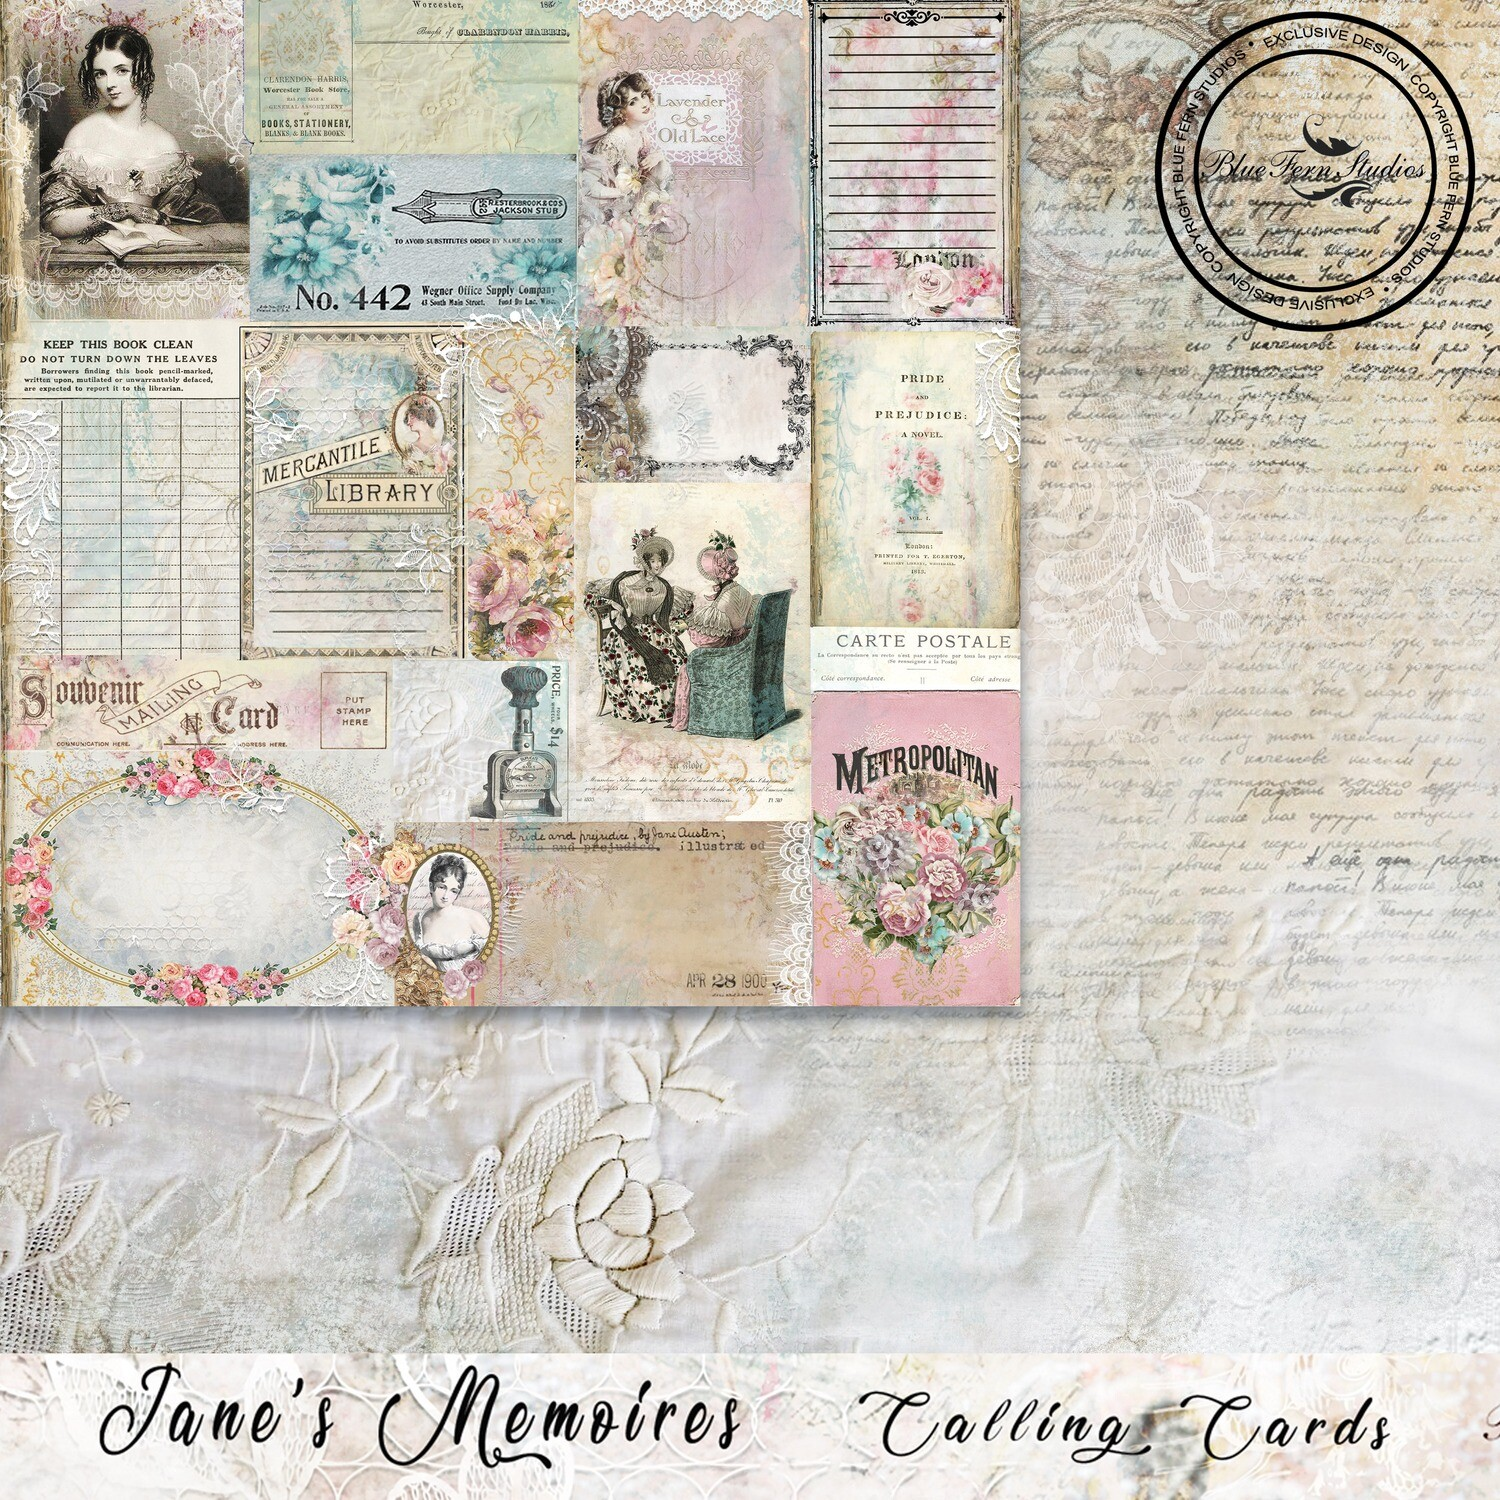 Blue fern Crafts 12 x 12 paper - 	 	 Jane's Memoirs - Calling Cards